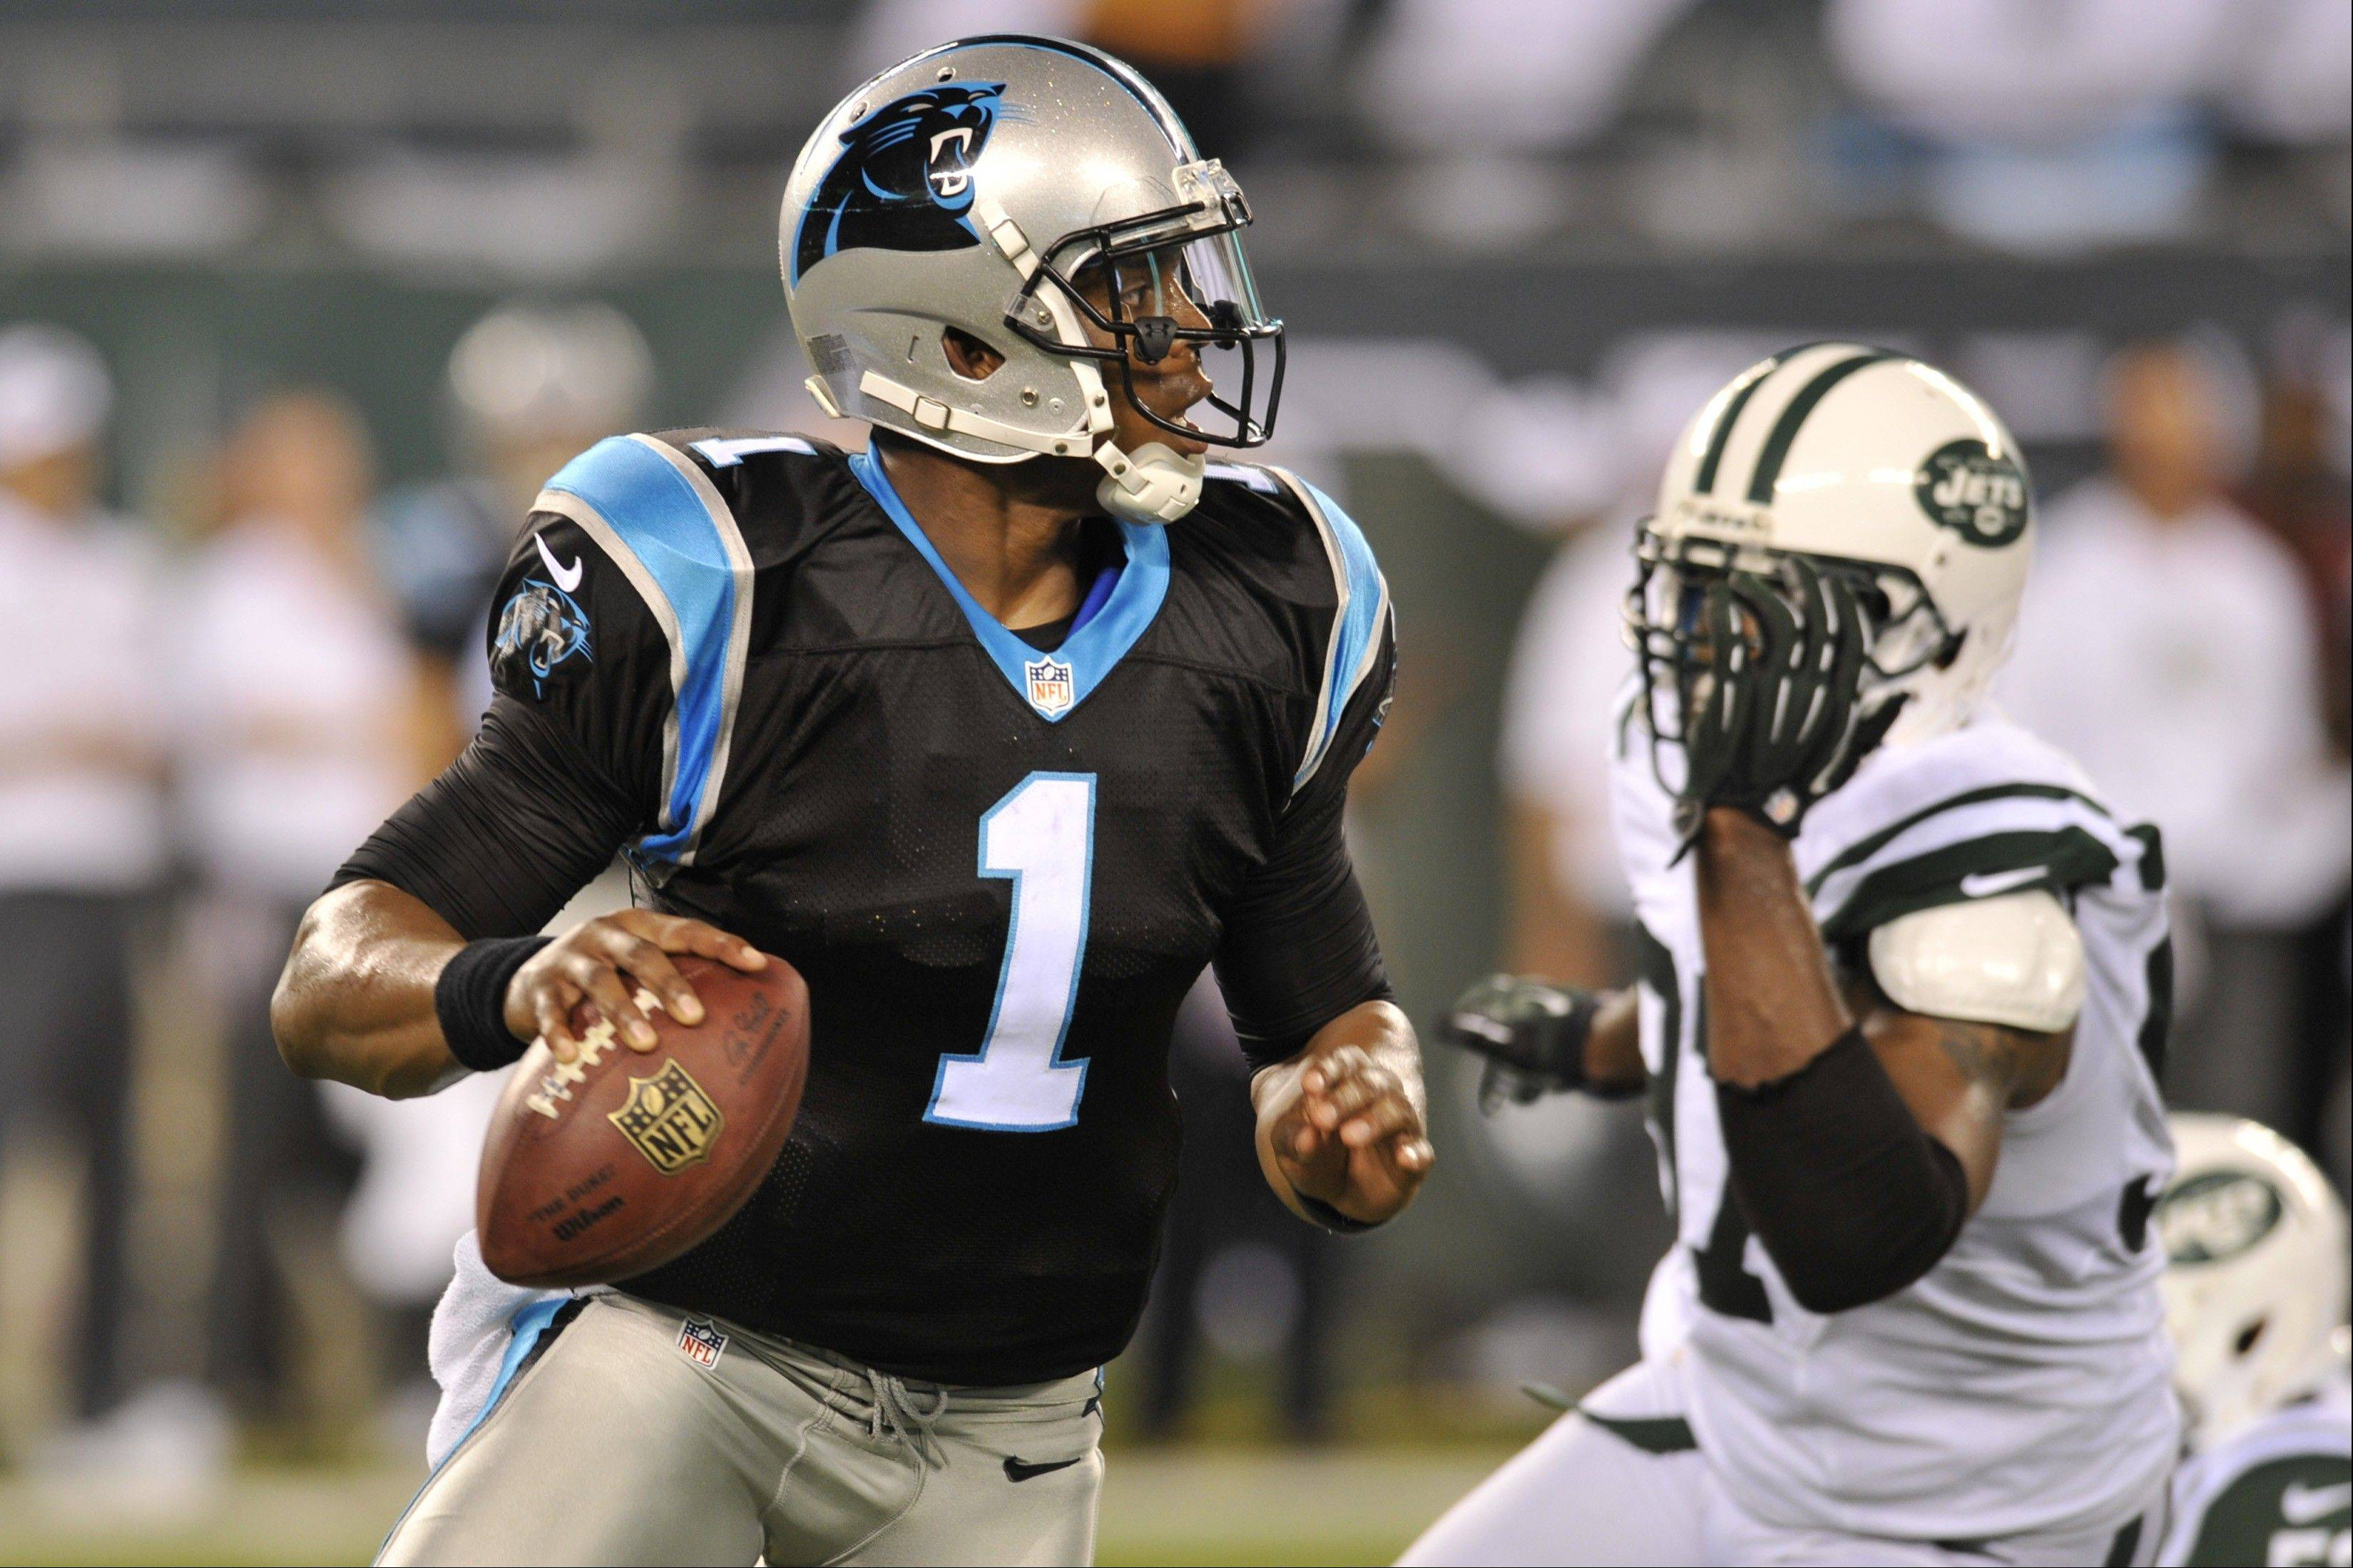 Carolina Panthers quarterback Cam Newton (1) set an NFL rookie record with 4,051 yards last season and accounted for 35 touchdowns.